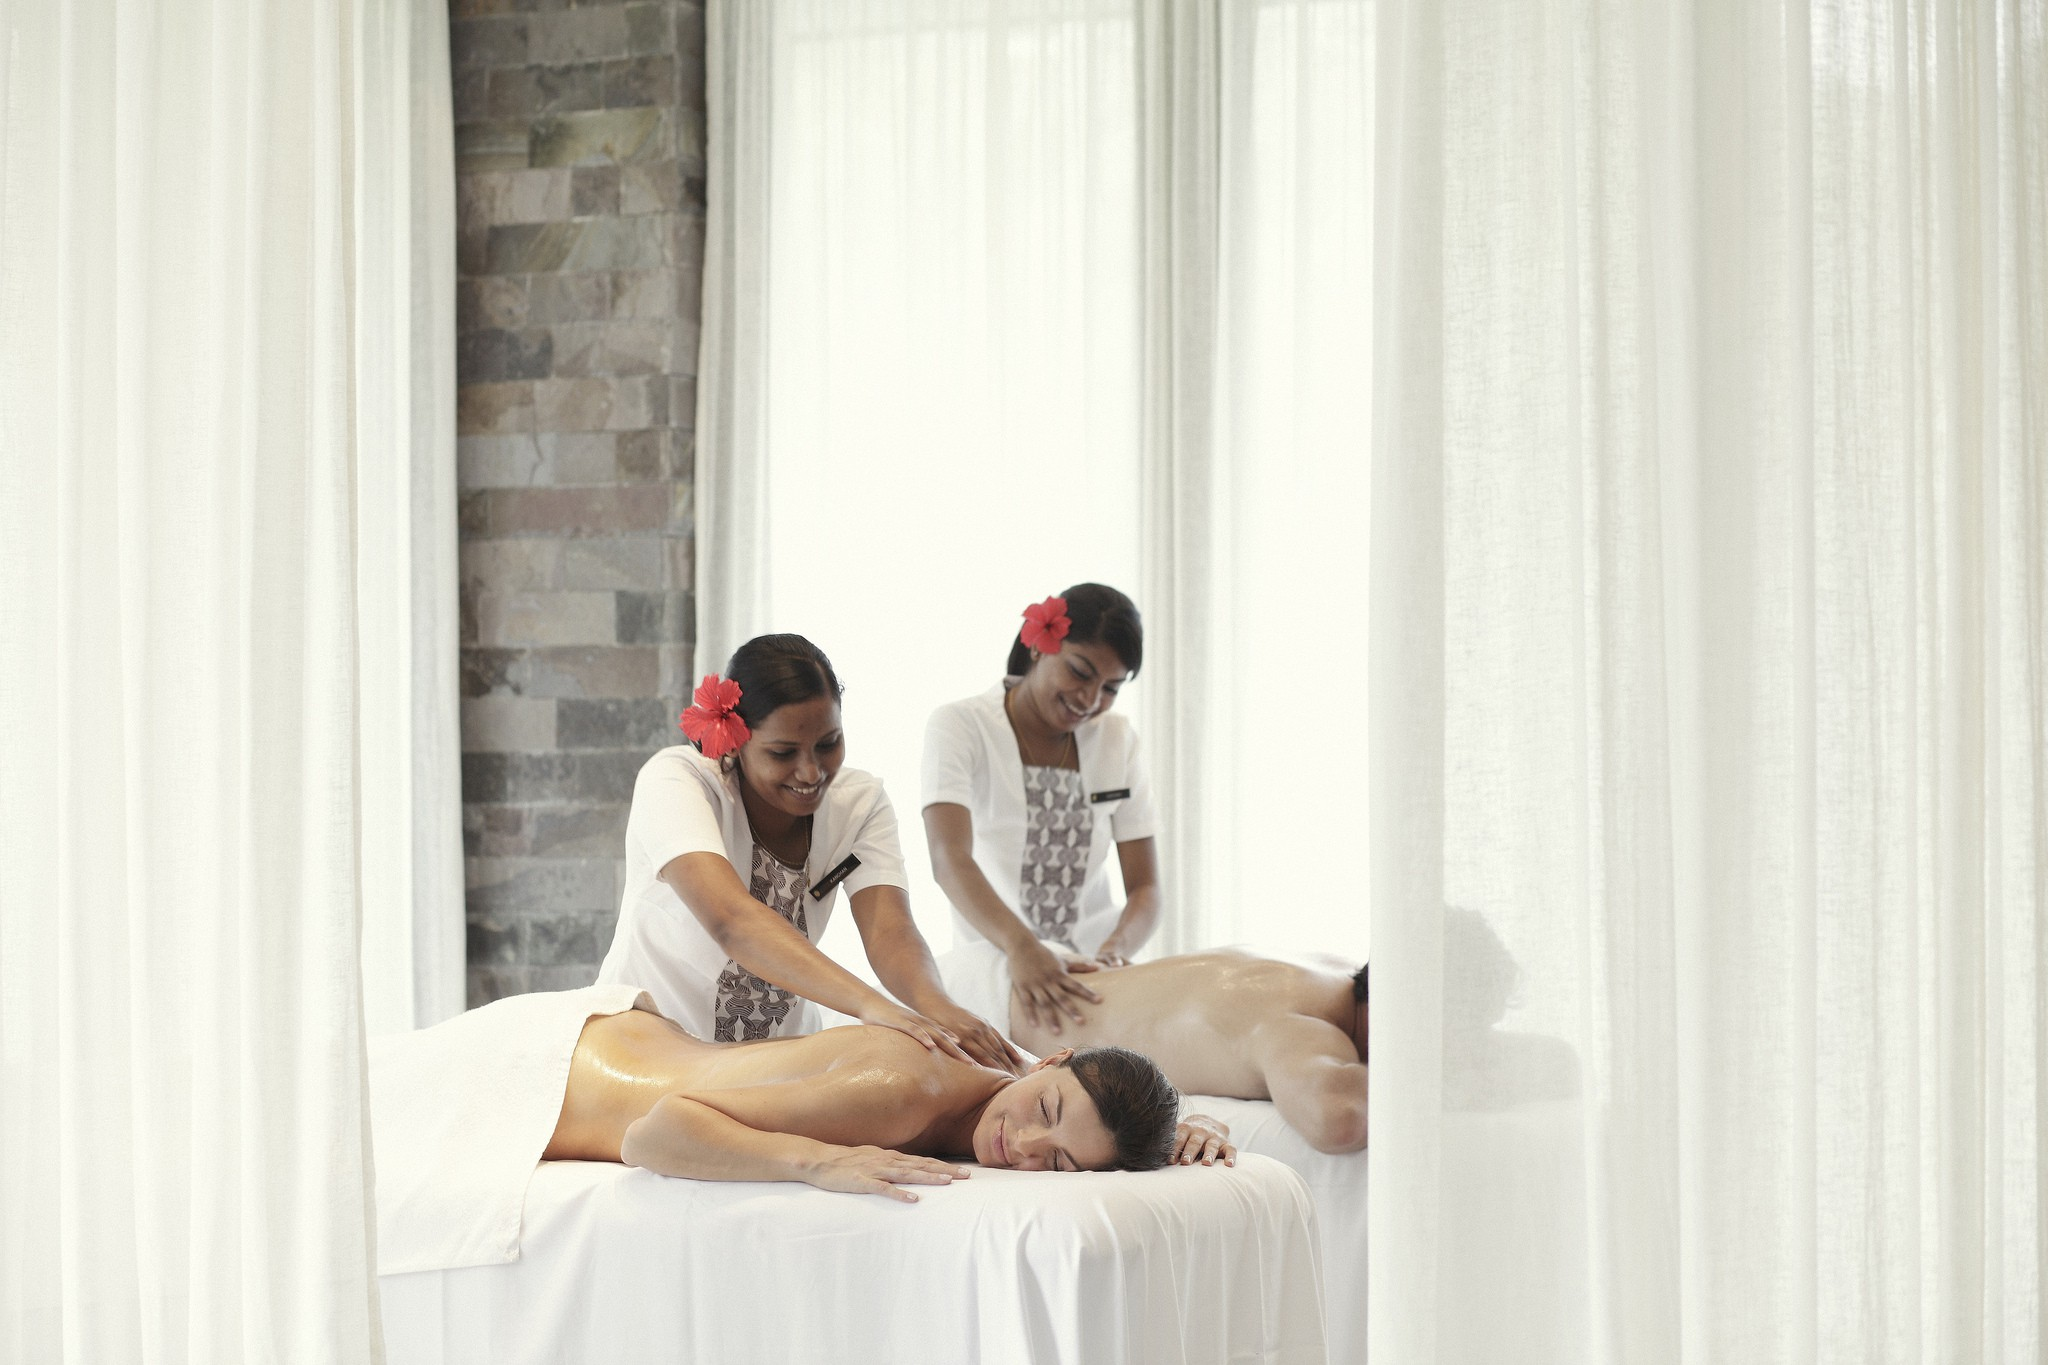 Couples massage in Fiji | Courtesy of InterContinental Fiji Golf Resort and Spa / Flickr